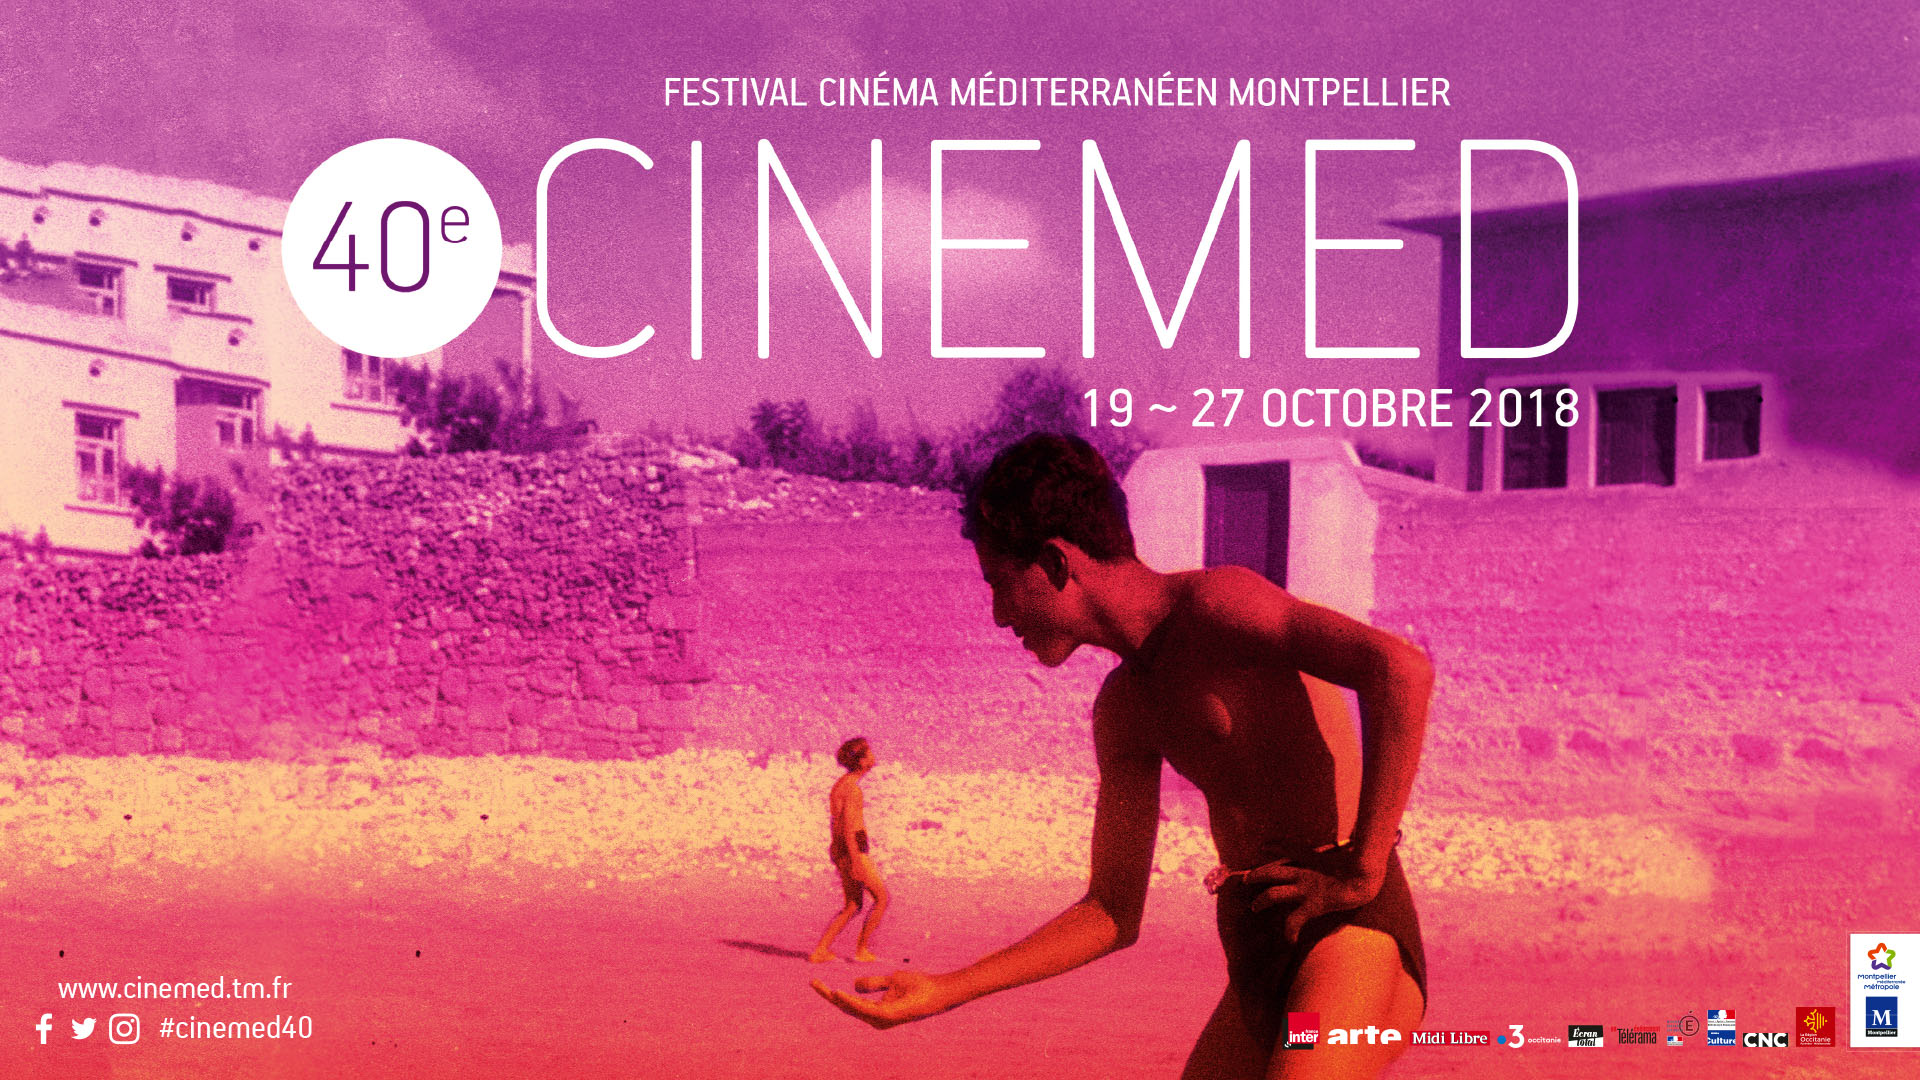 Programme Cinemed